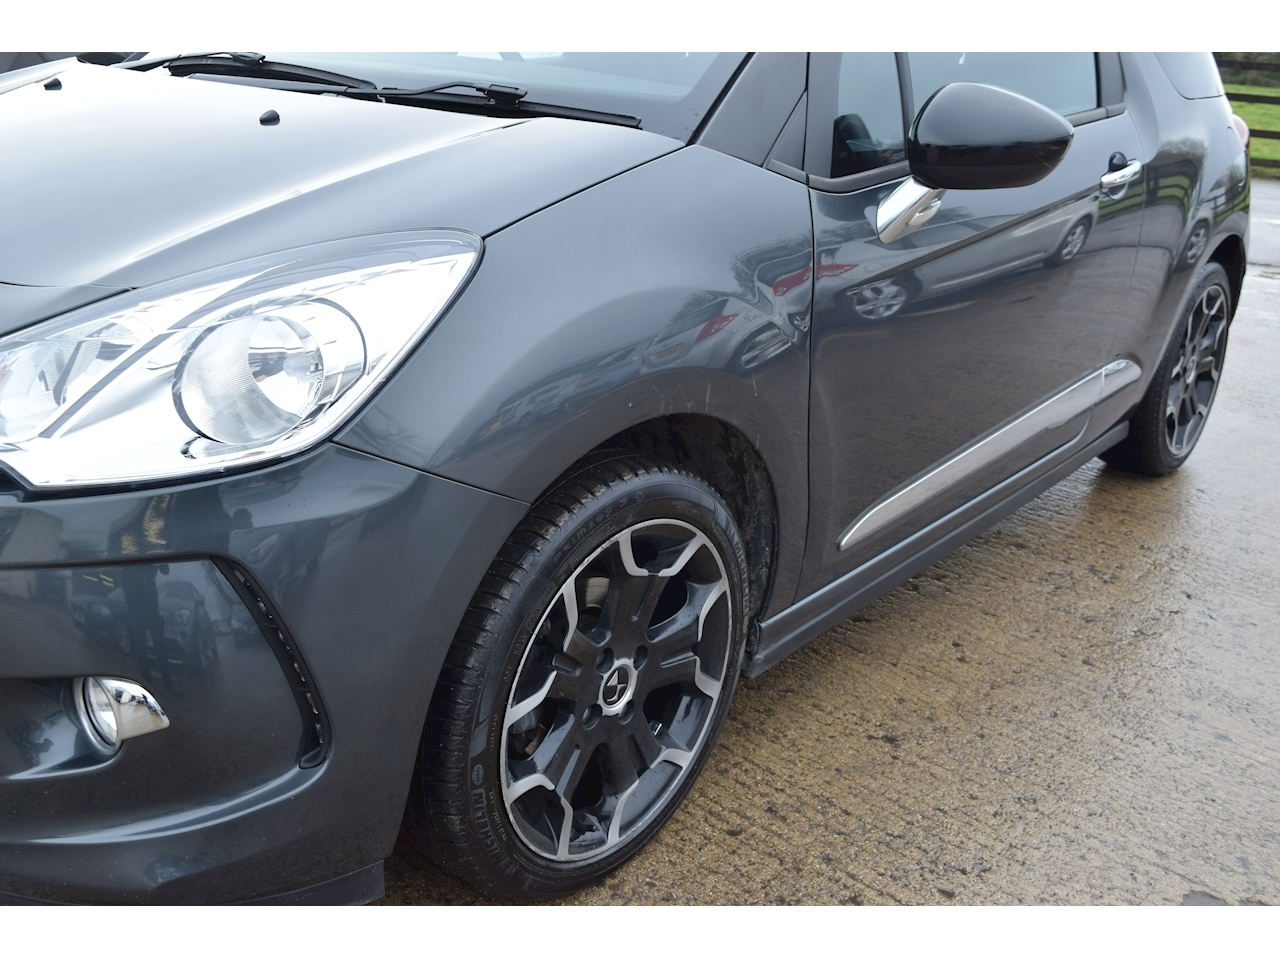 Ds Ds 3 Bluehdi Dstyle S/S Hatchback 1.6 Manual Diesel